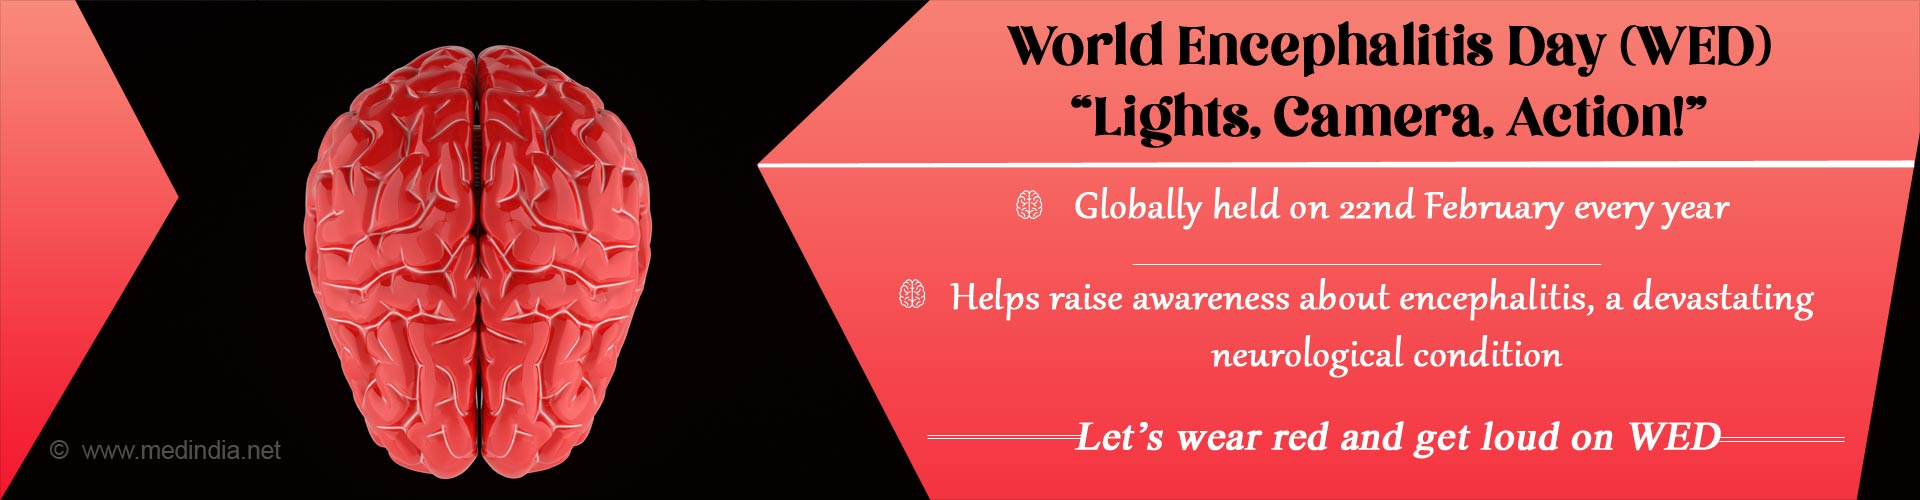 World Encephalitis Day (WED): Light Up and Wear Red for WED